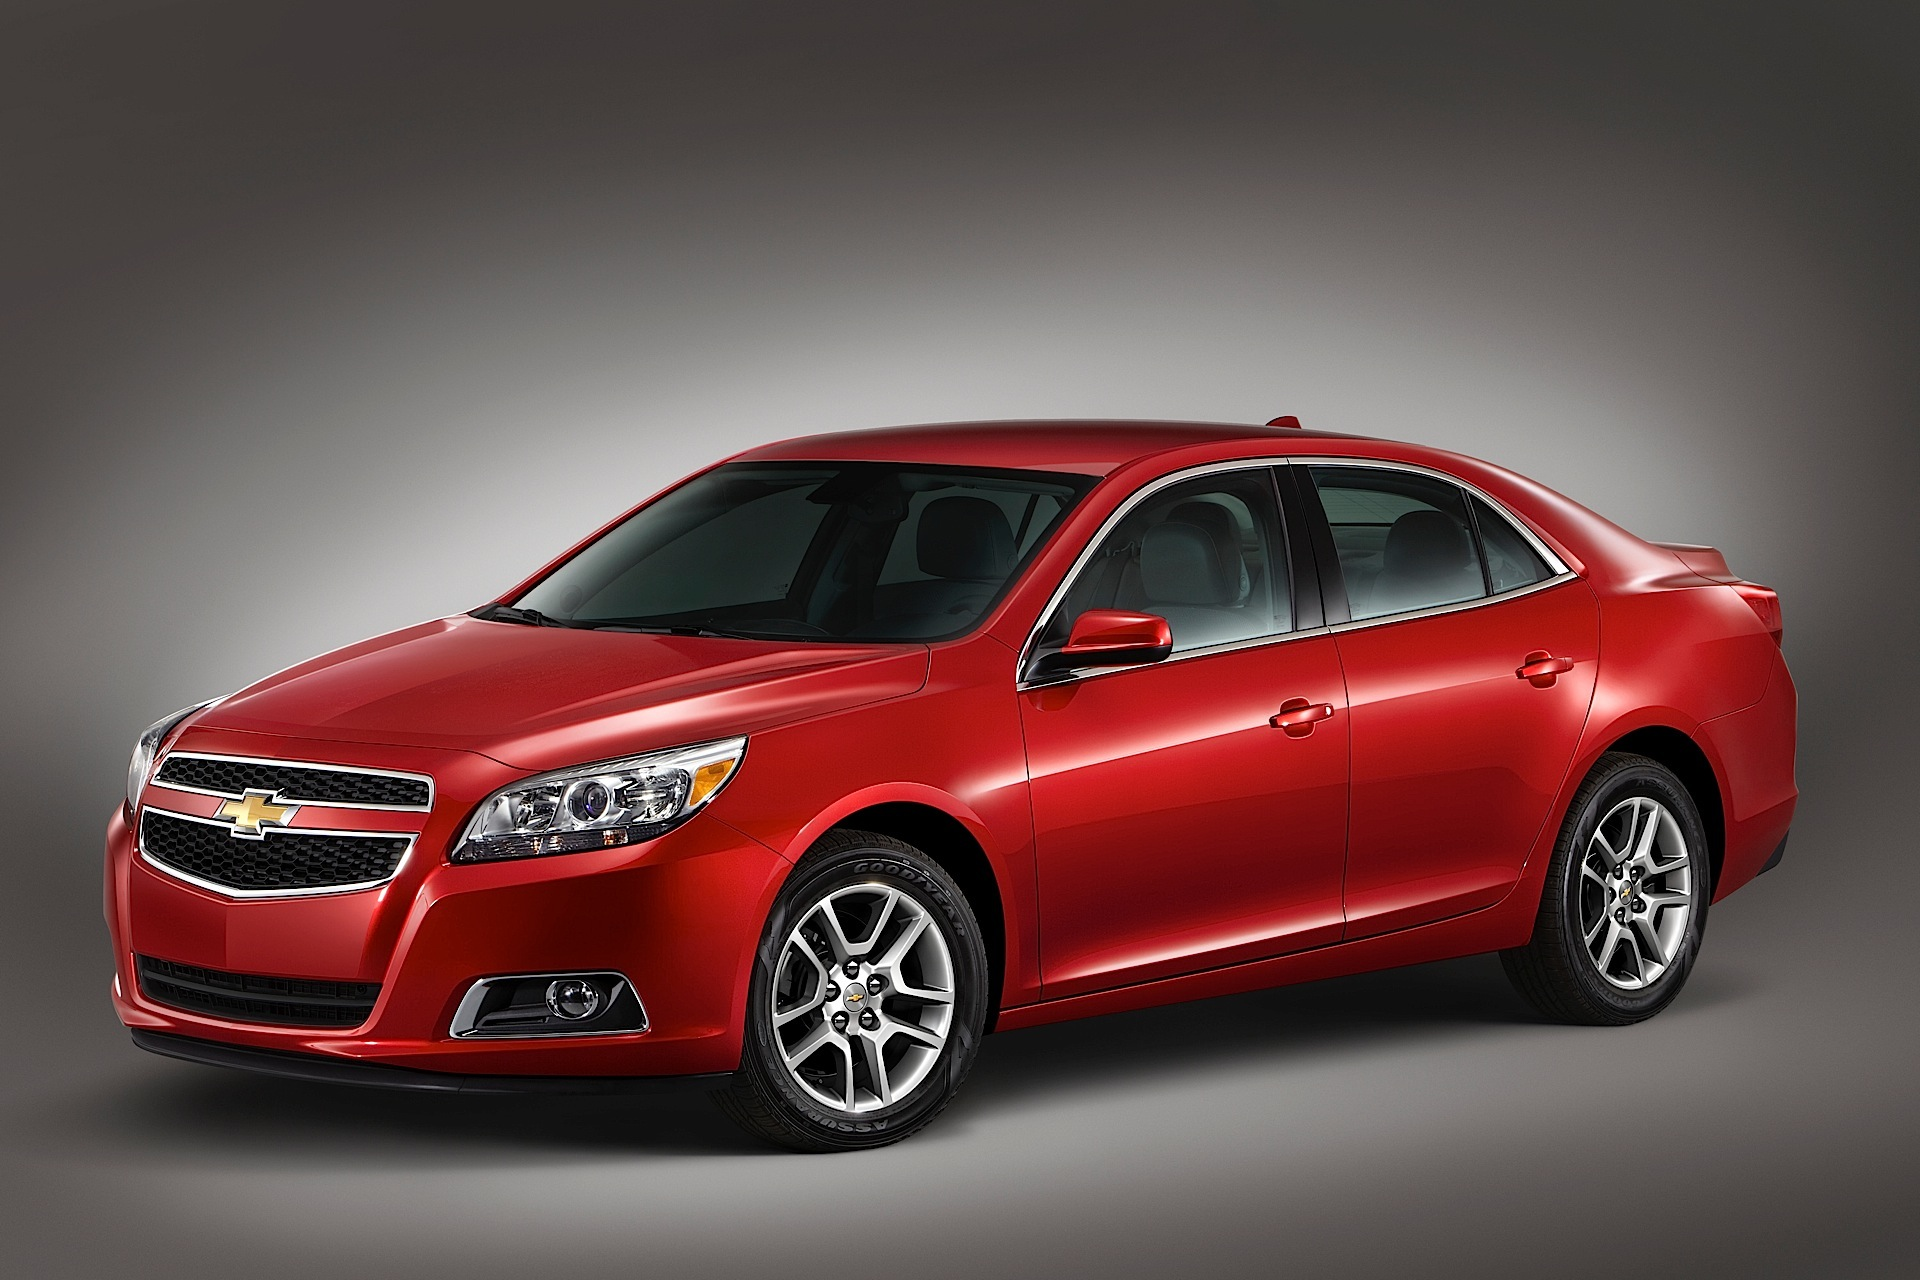 2014 chevy malibu now most fuel efficient sedan html. Black Bedroom Furniture Sets. Home Design Ideas